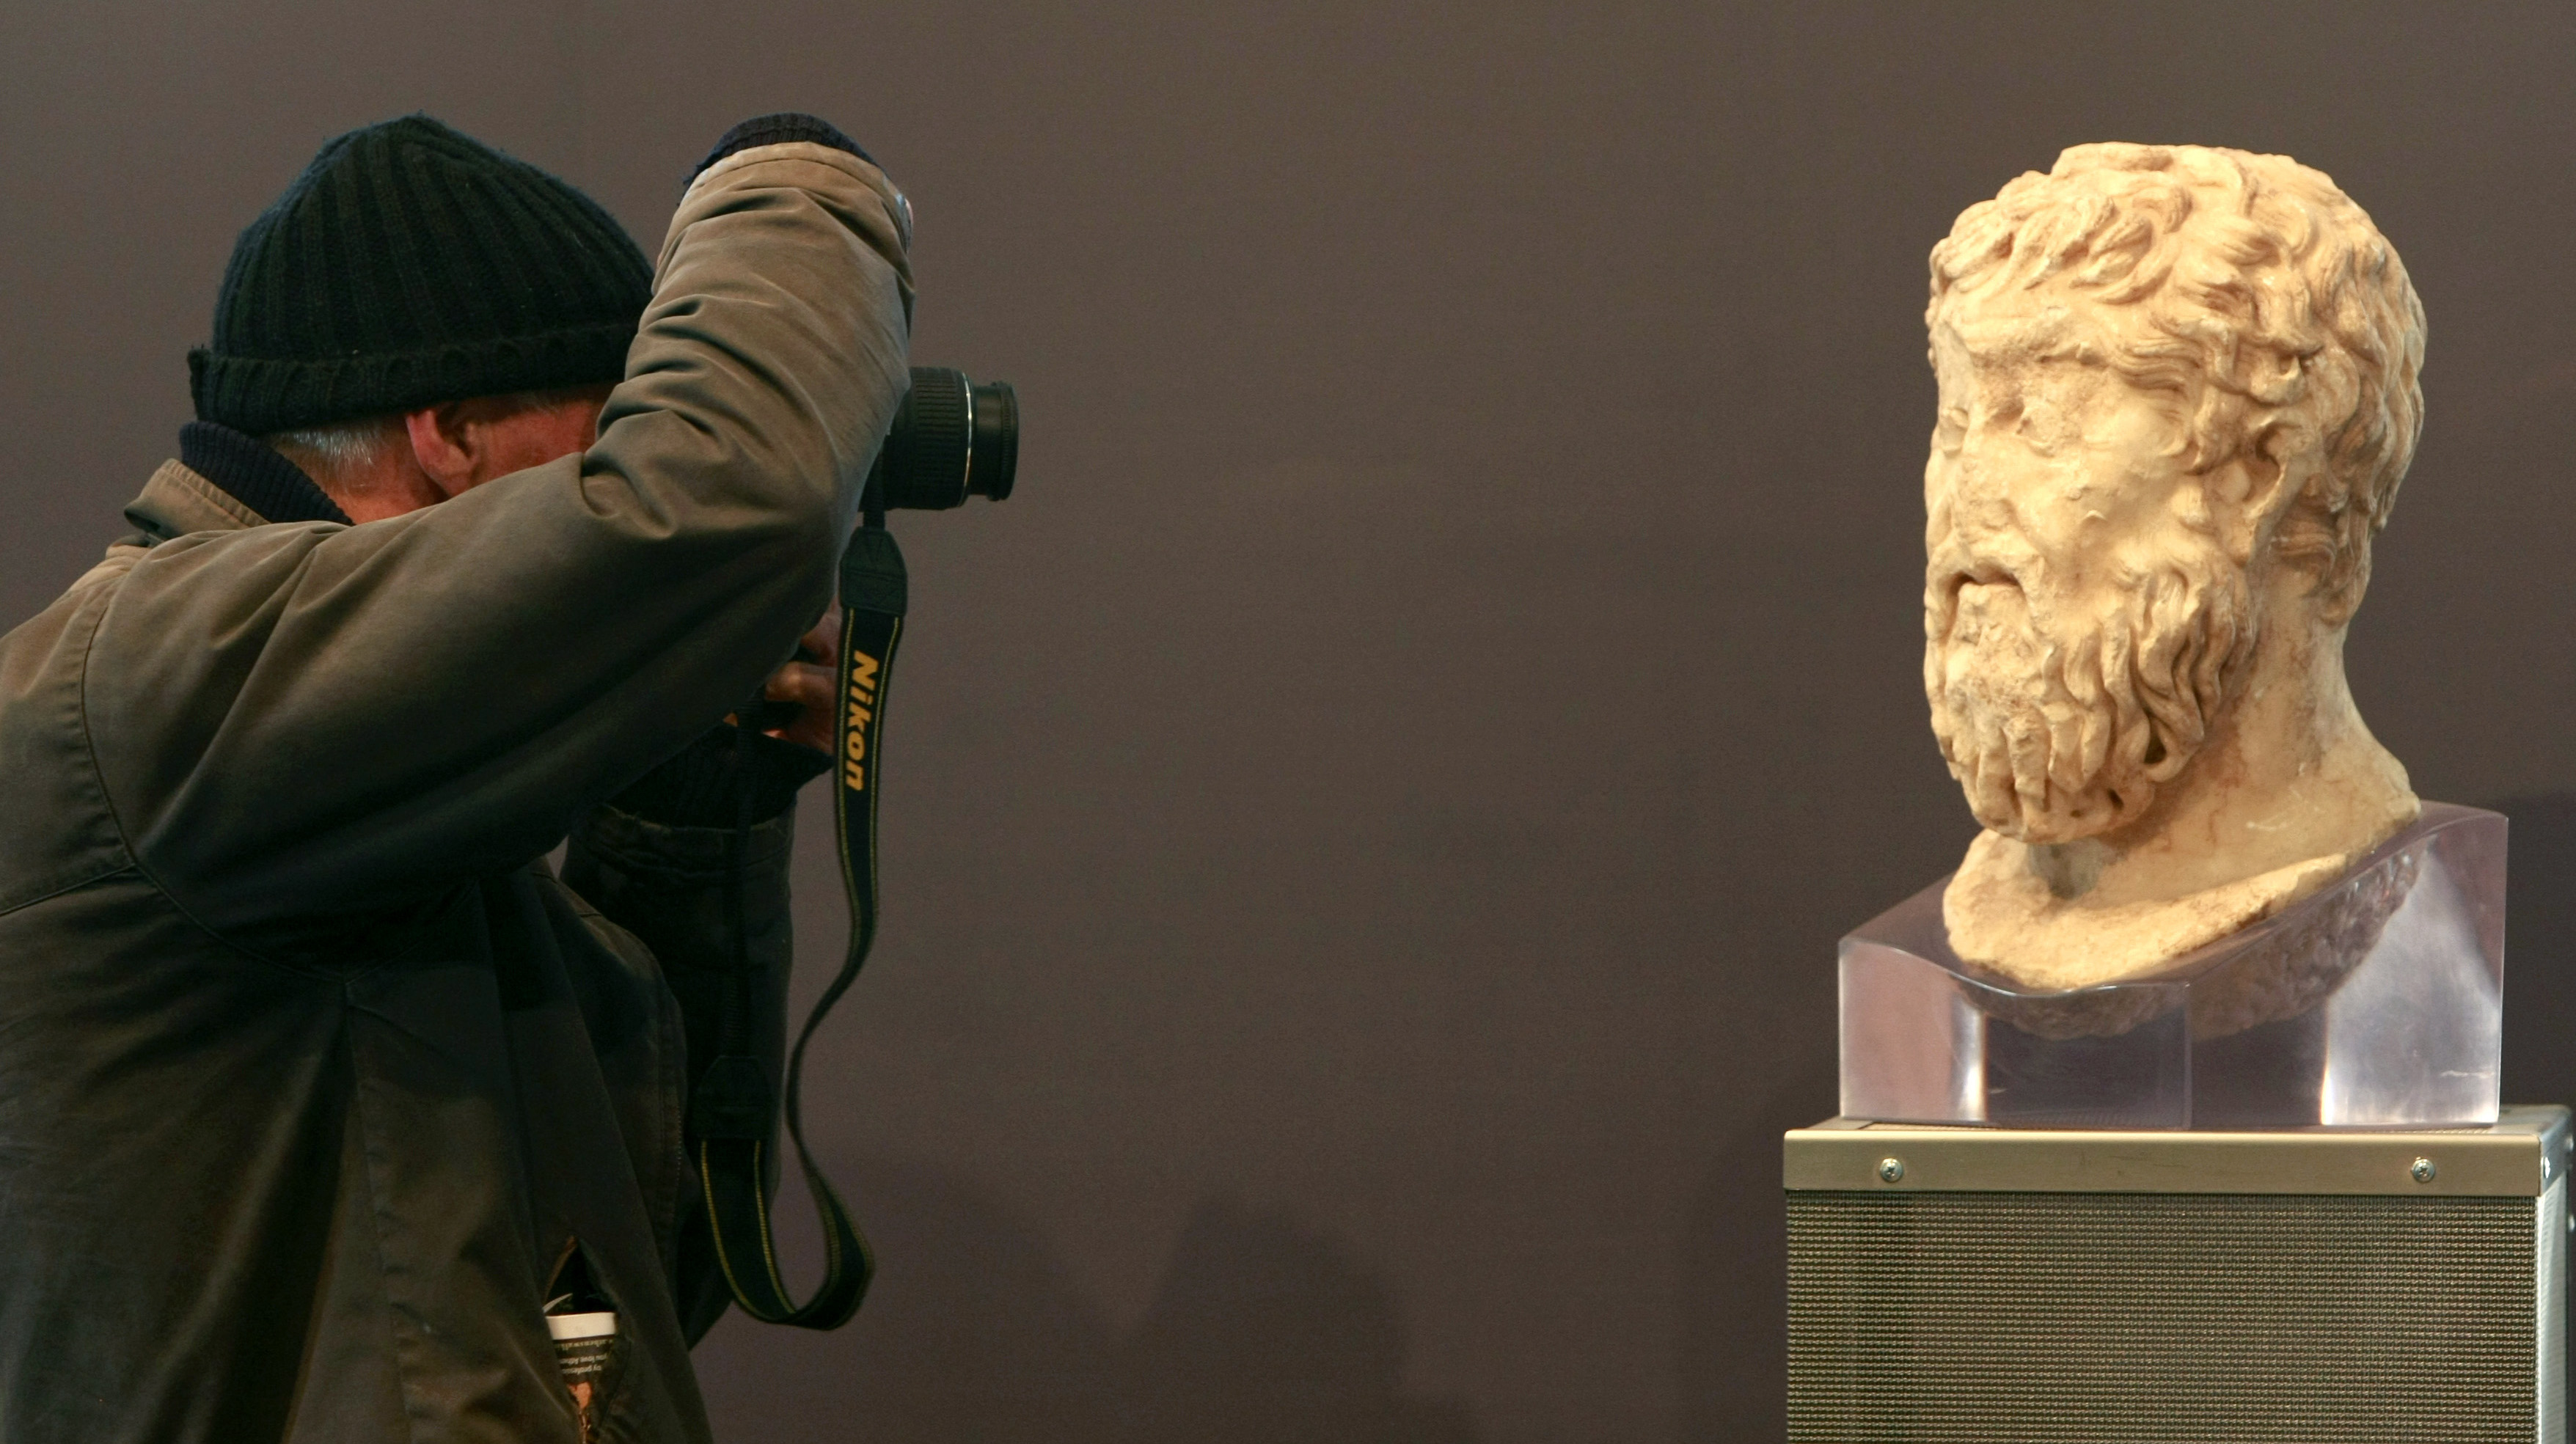 A man photographs a Plato statue inside the new Acropolis museum in Athens